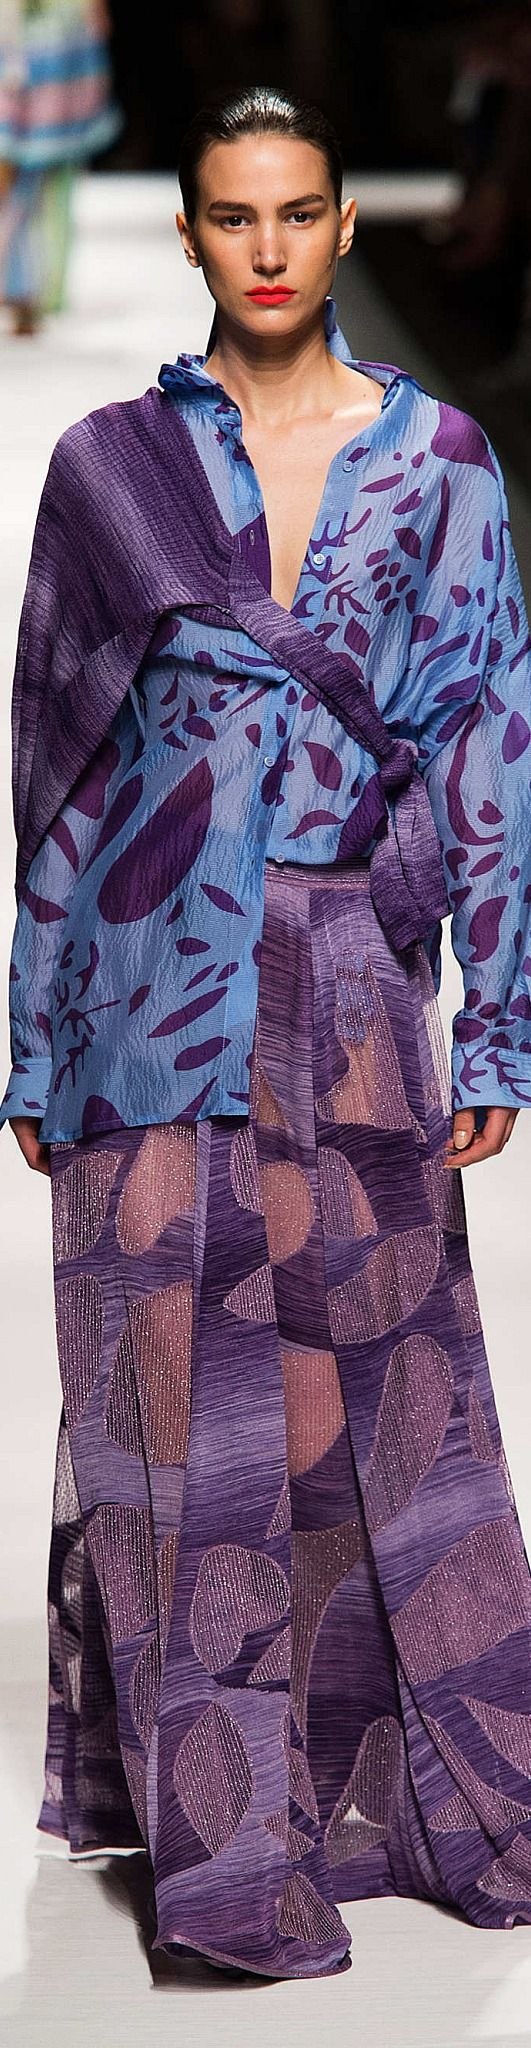 Missoni Collection Spring 2015 | The House of Beccaria~